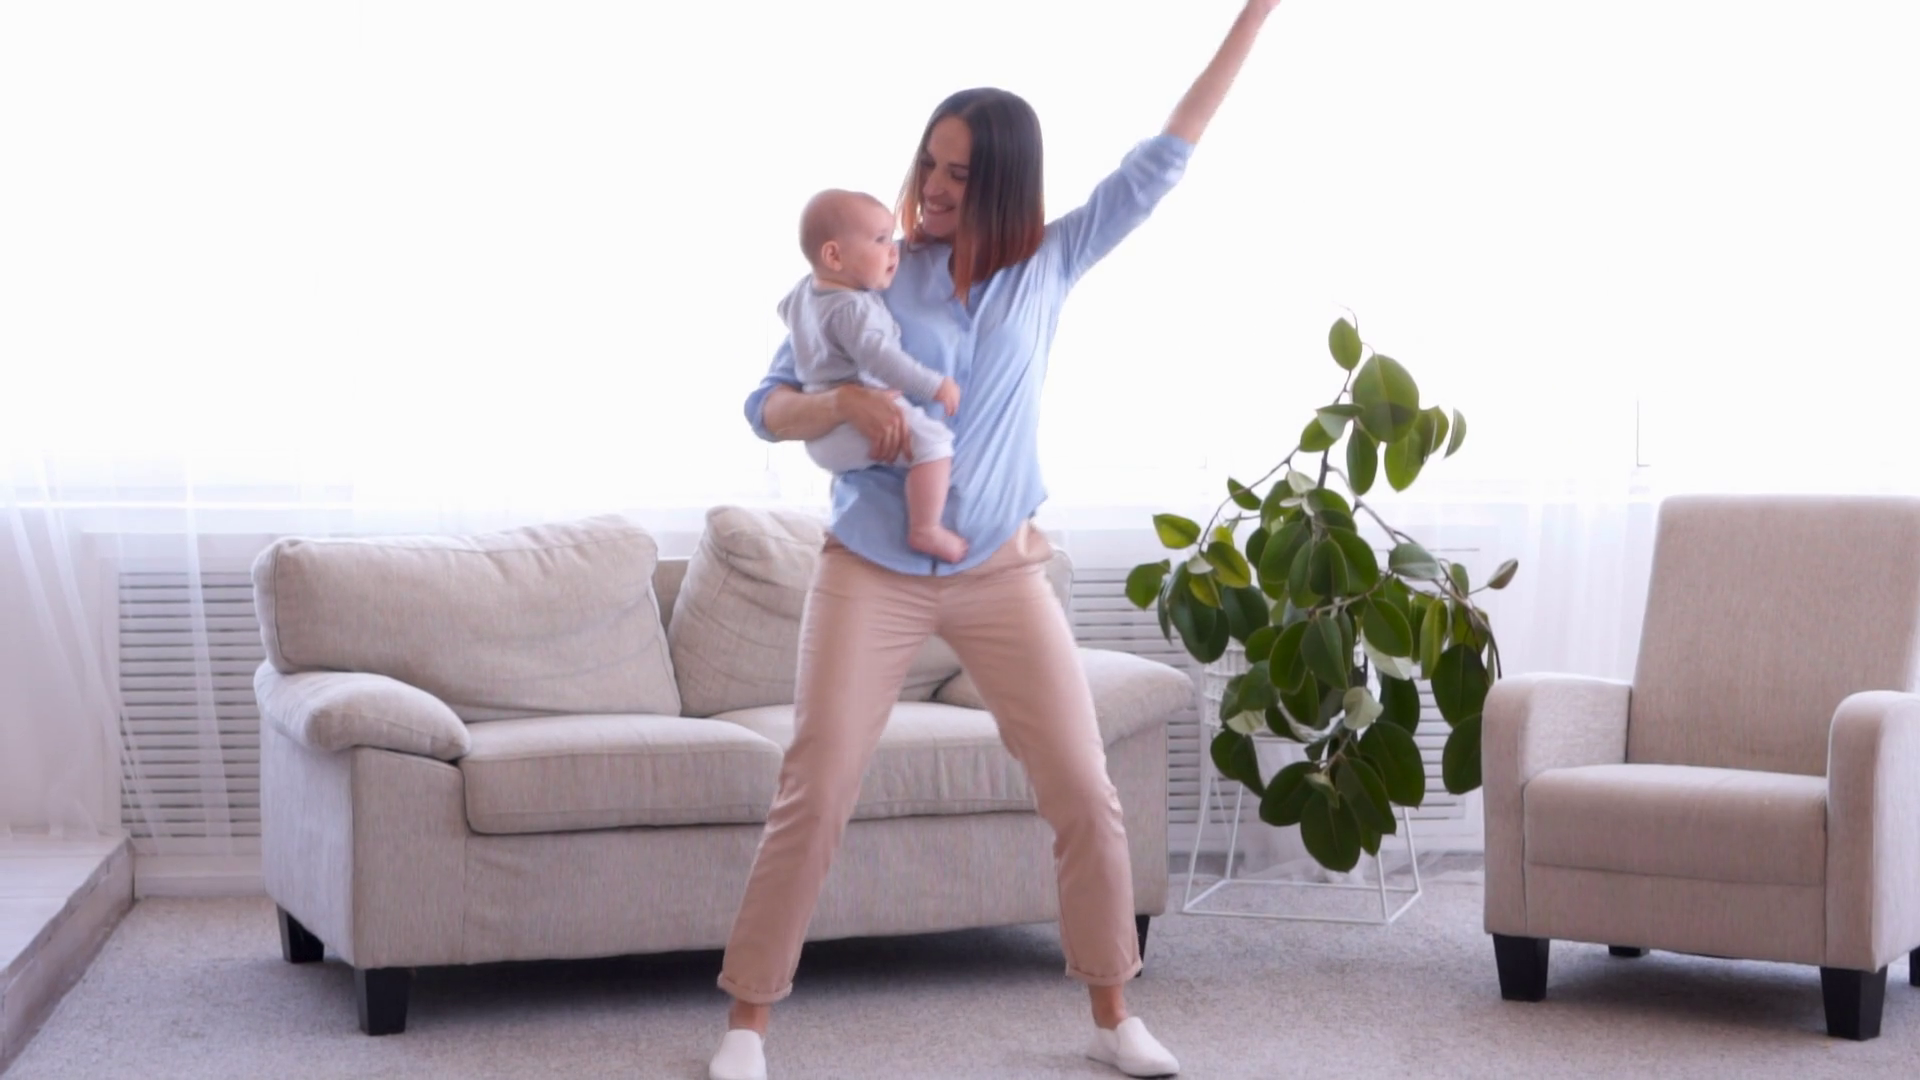 Cool Modern Mother With Little Baby Girl Dancing Together Stock